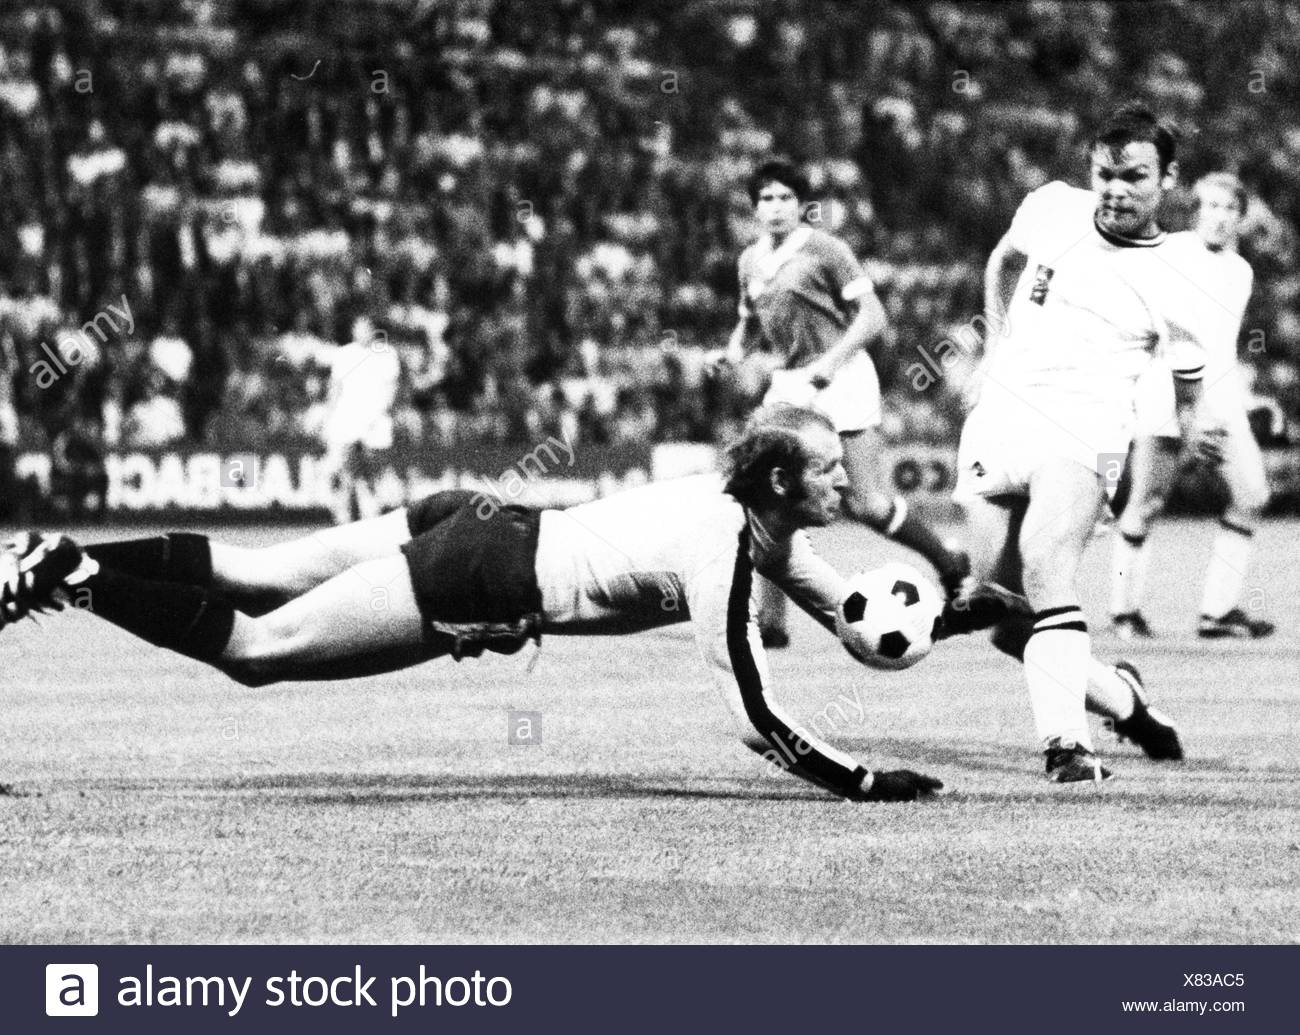 sports, football, games, Germany, DFB-Pokal 1969 / 1970, quarter final, game Borussia Moenchengladbach versus 1. FC Koeln (2:3), Boekelbergstadion, Gelsenkirchen, 5.8.1970, goal keeper Manfred Manglitz (Cologne repelling the attack of striker Herbert Laumen, DFB cup, football match, soccer match, football matches, footballer, footballers, kicker, football player, football players, action, act, actions, acts, attack, offensive move, attacks, offensive moves, defences, defenses, defense, defence, save, military parade, running, run, runs, jumping, jumps, jump, pl, Additional-Rights-Clearences-NA - Stock Image